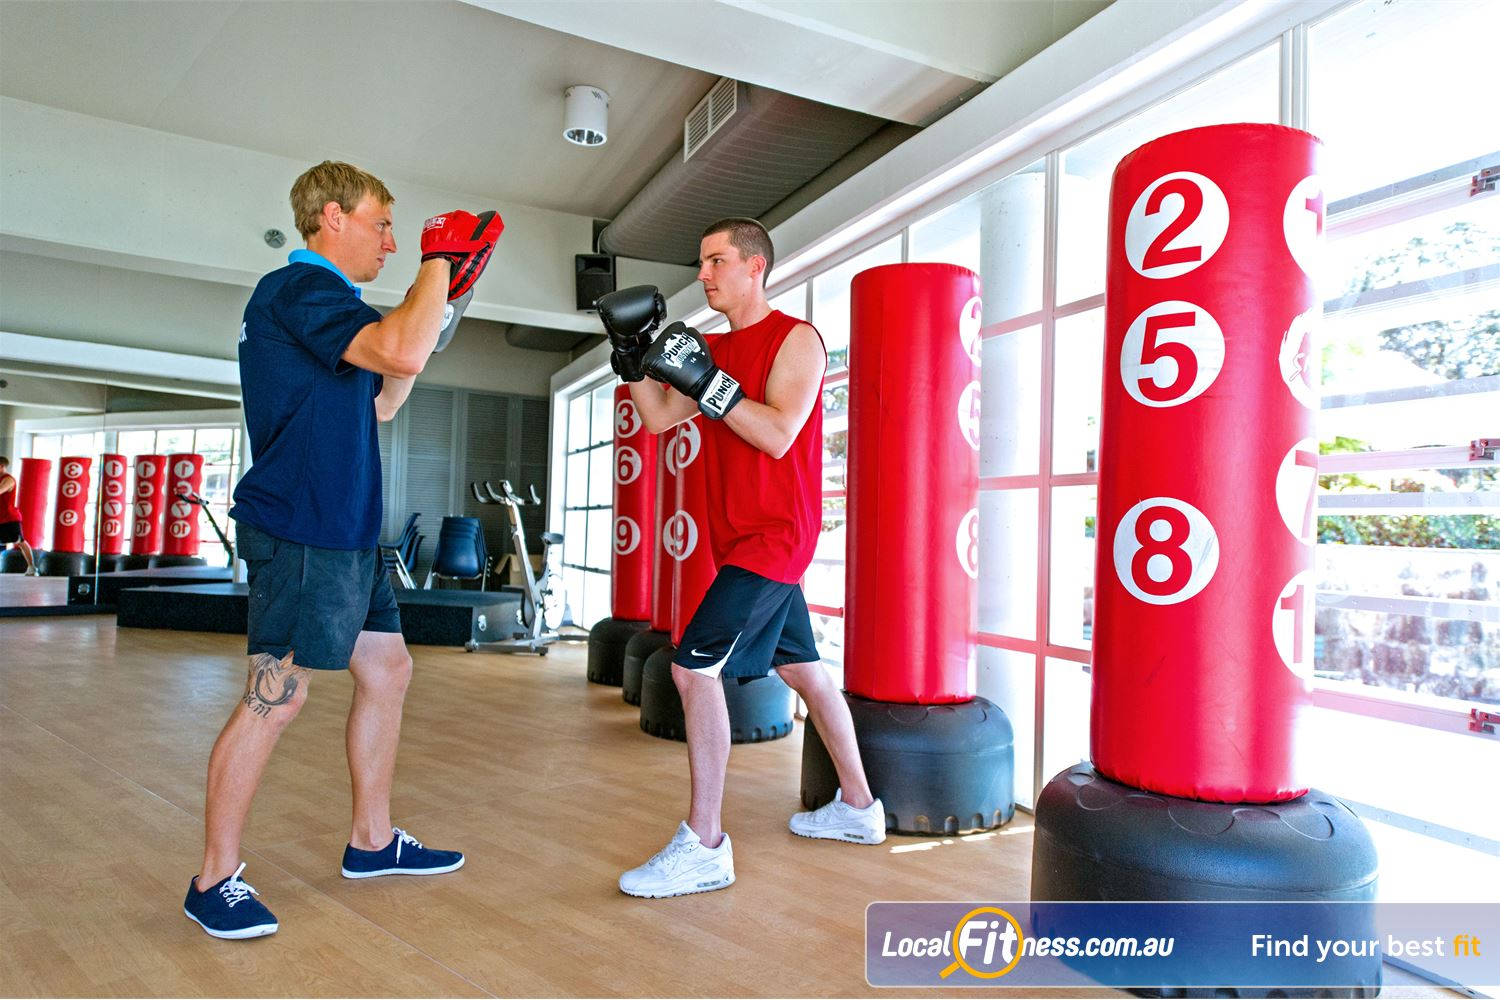 Victoria Park Pool Camperdown Camperdown personal training is suitable for all ages and abilities.